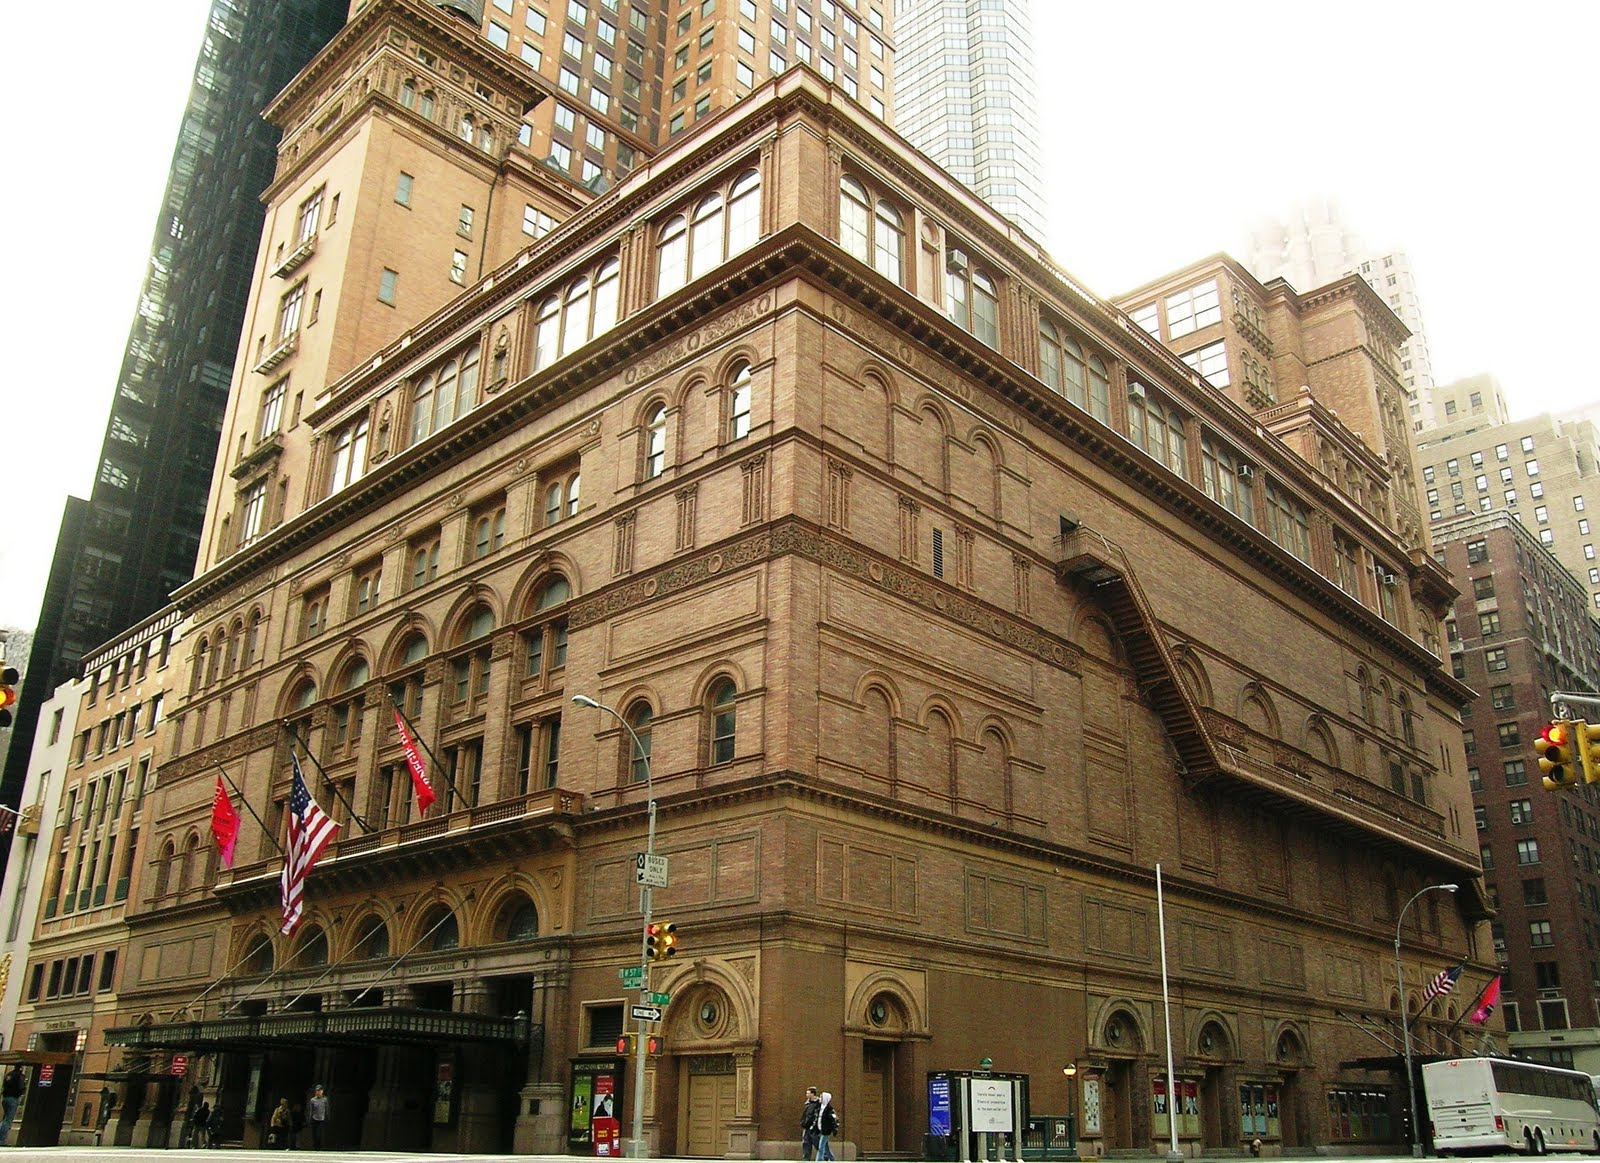 https://grassclippingsblog.files.wordpress.com/2011/11/carnegie-hall.jpg